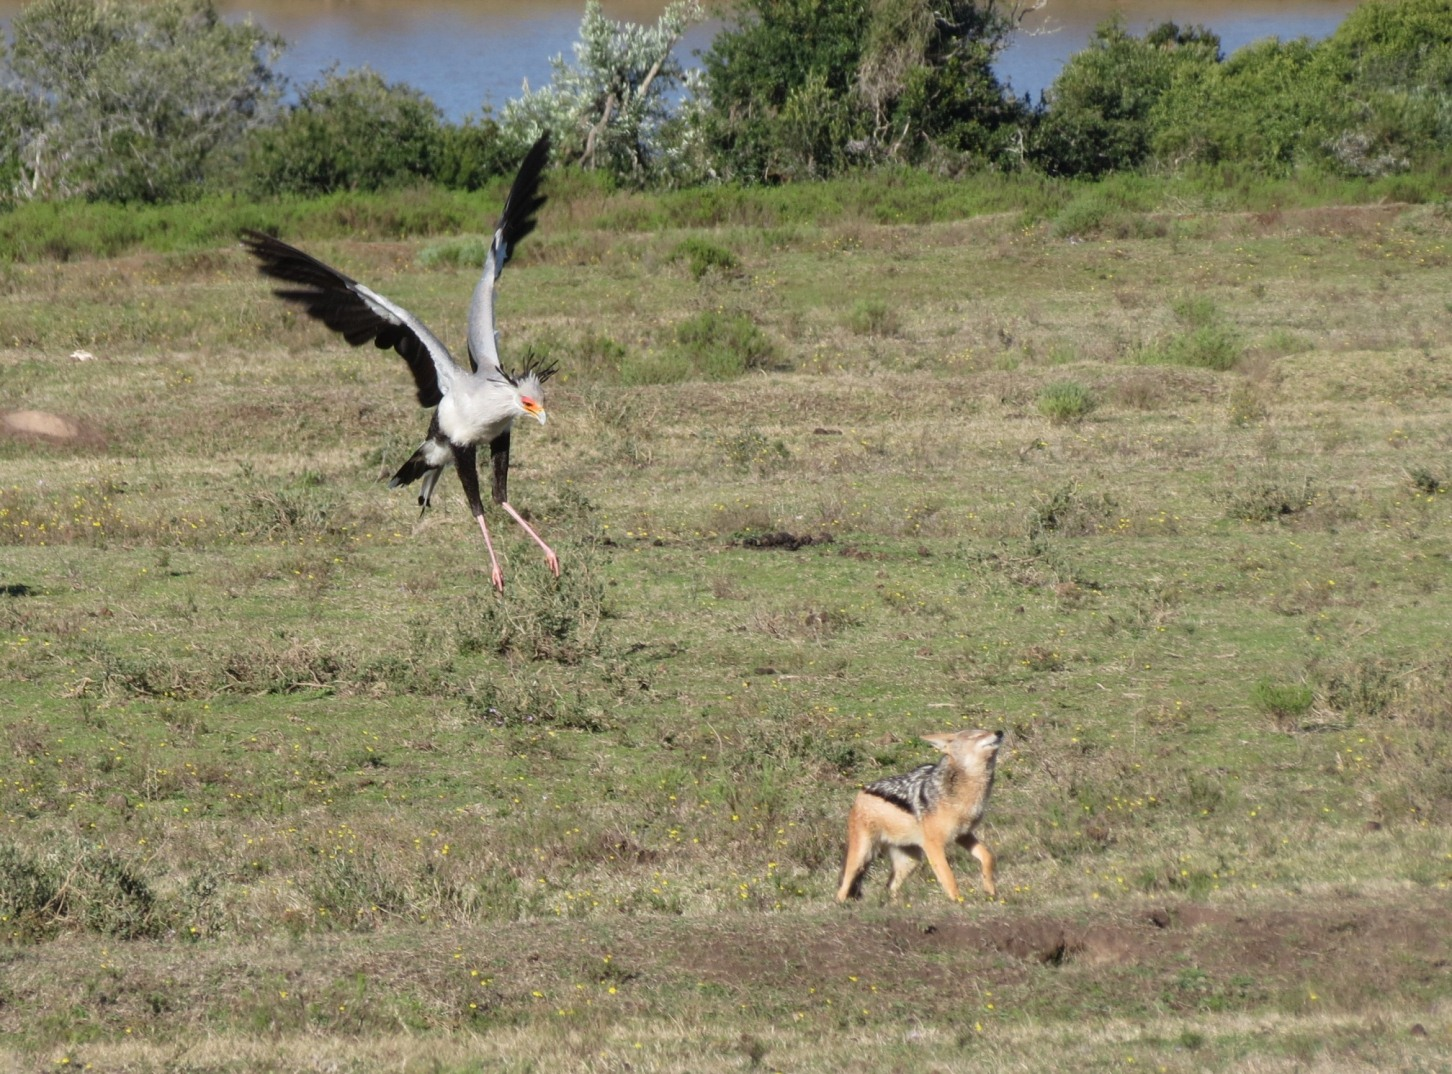 A bird and wild dog compete for some food at the Pumba Game Reserve